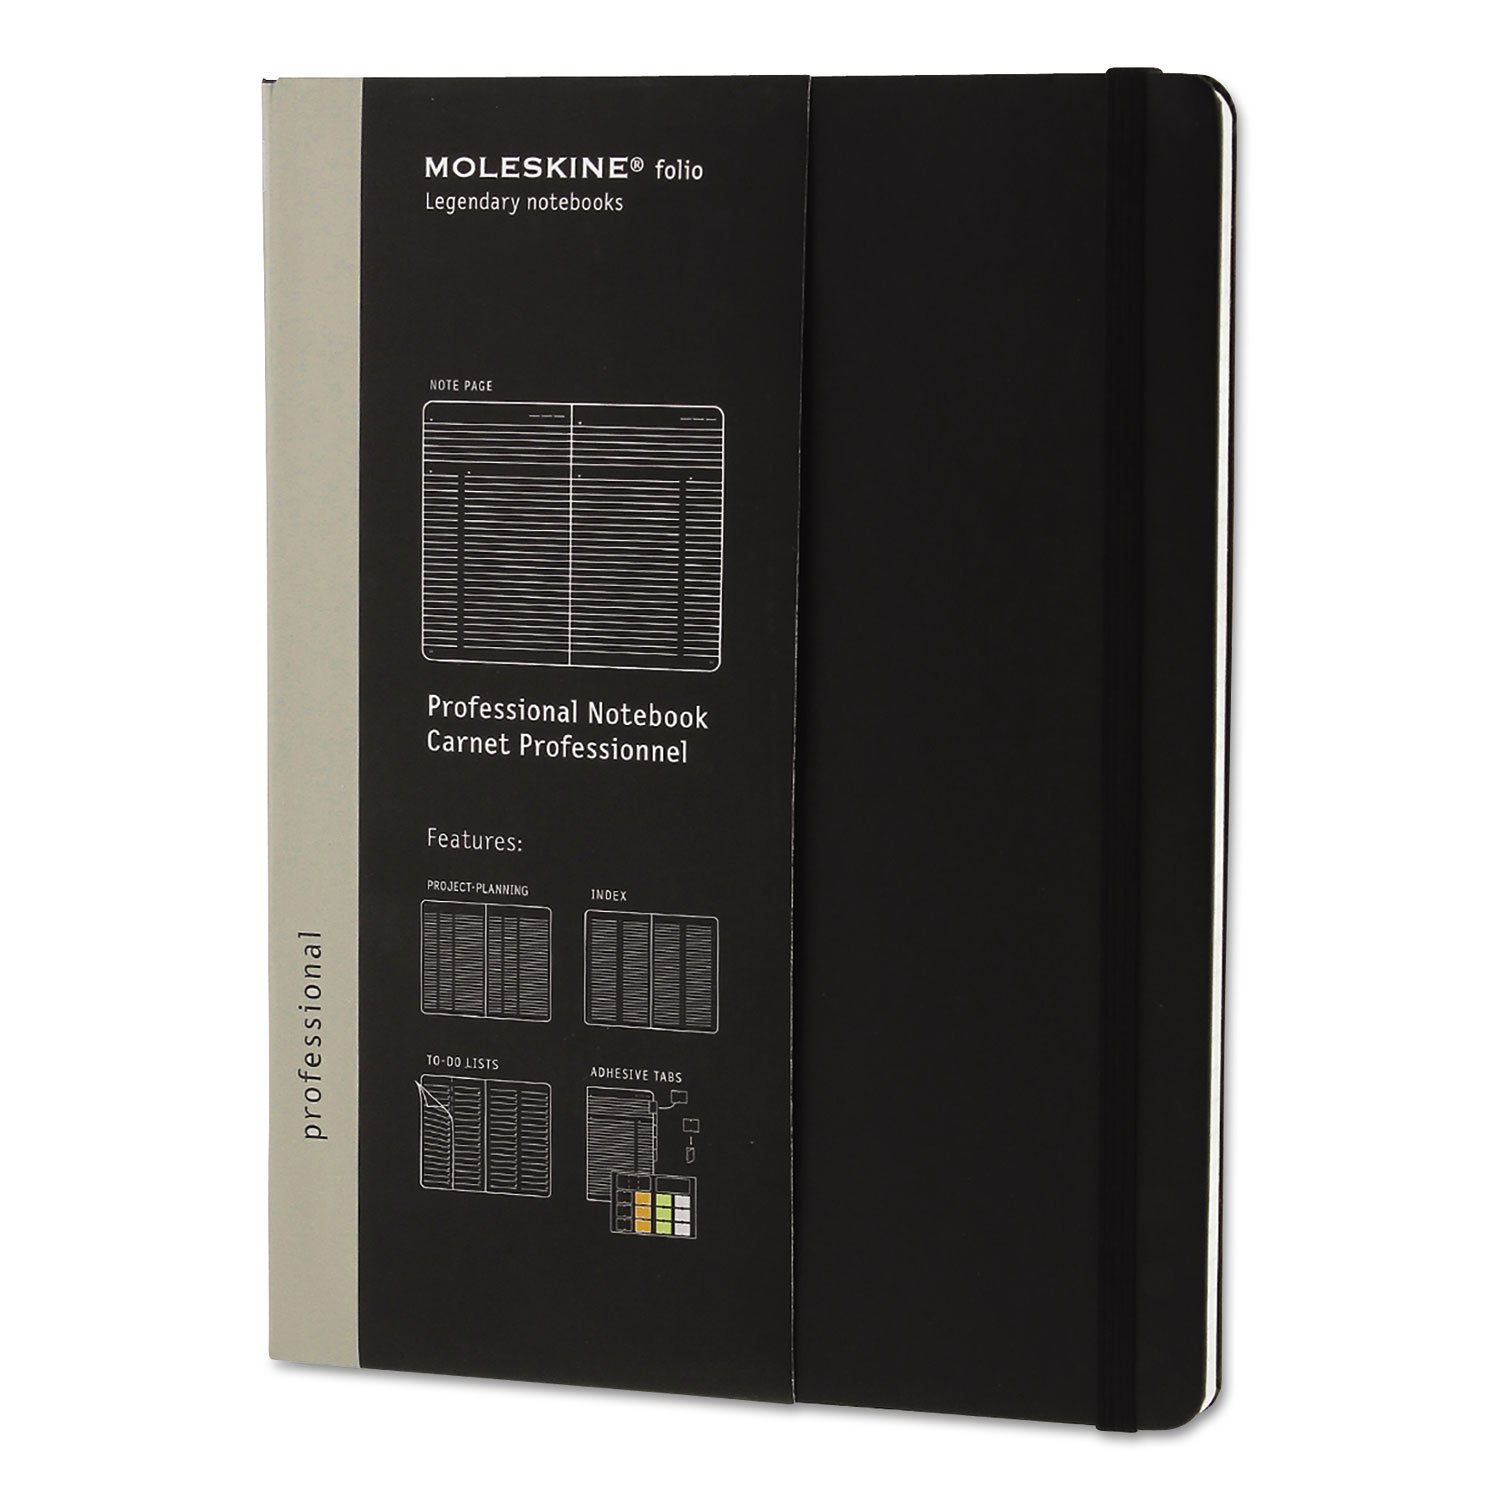 Moleskine Professional Notebook Extra Large Hard Cover (ME-PROPFNT4HBK) - Black (pc)